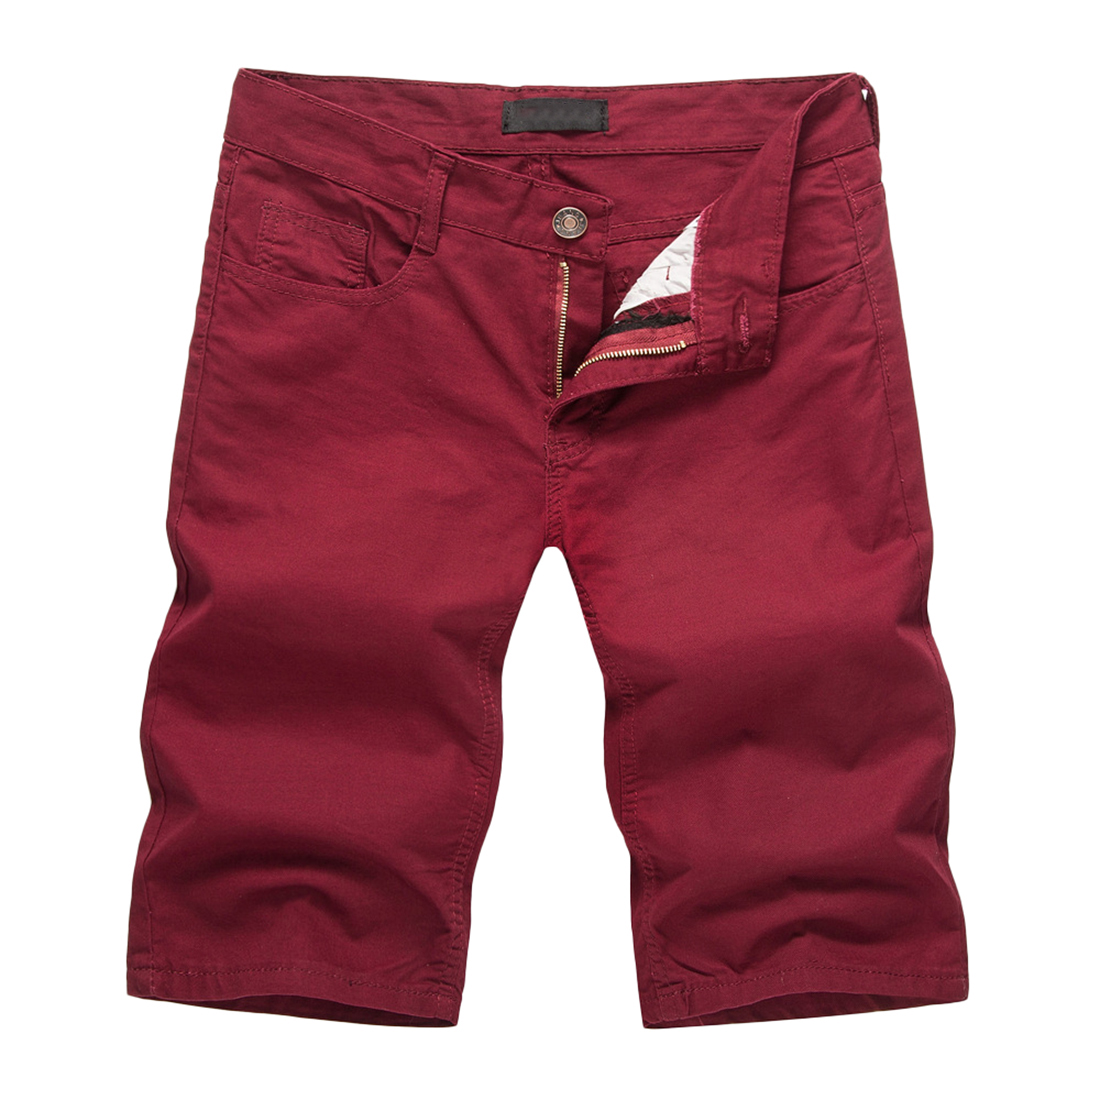 Men Shorts For Summer Casual Brand Compression Male Solid Color Wine Red Cargo Shorts Cotton Fashion Men Short Sweatpants